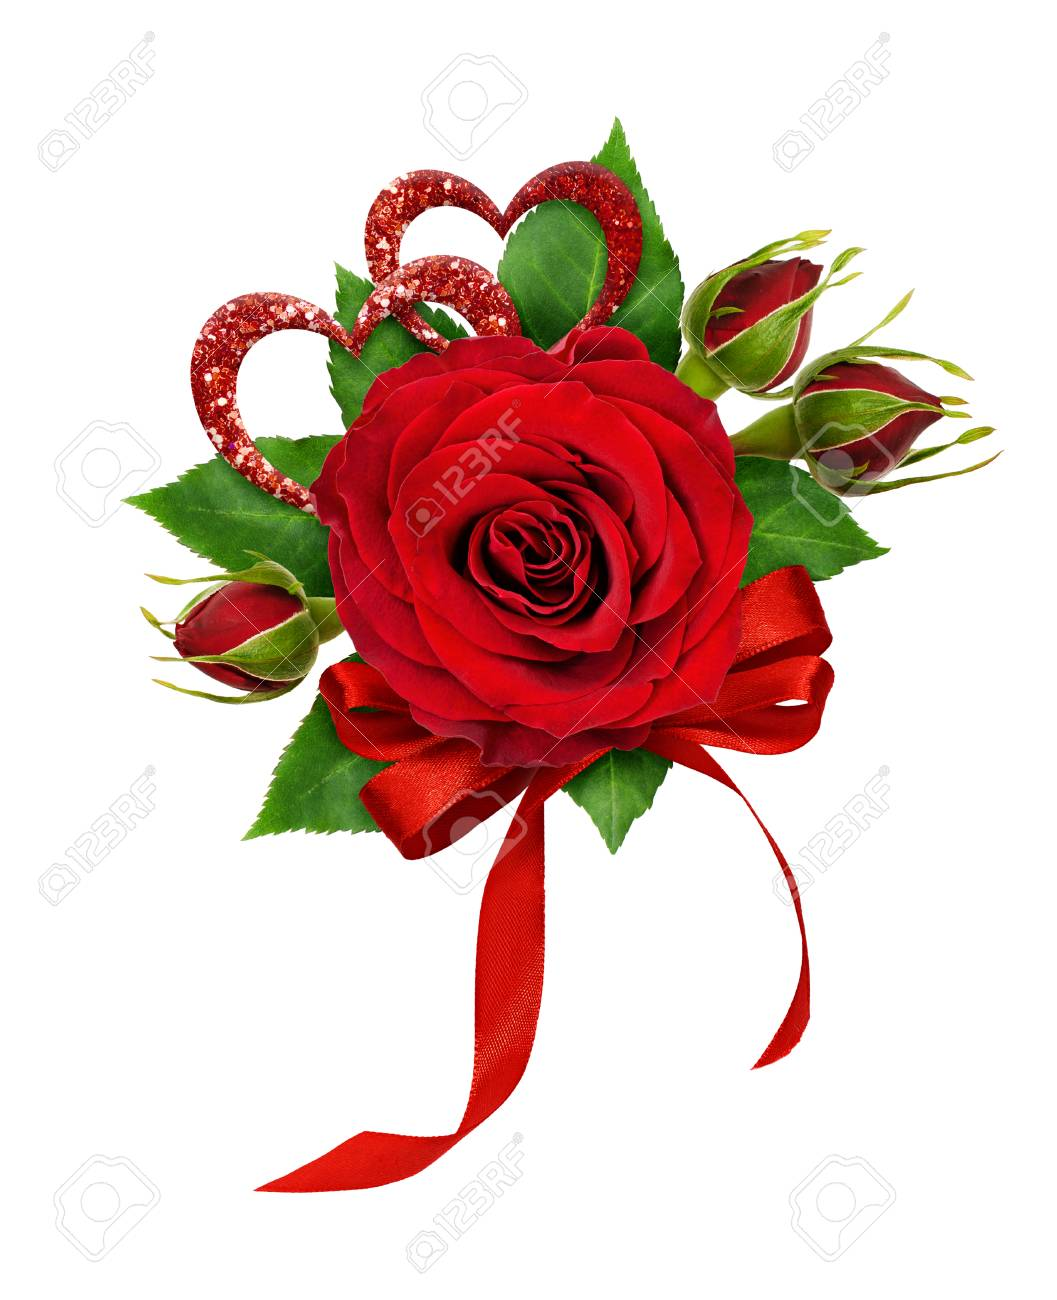 Festive Arrangement For Valentine S Day With Red Rose Flower